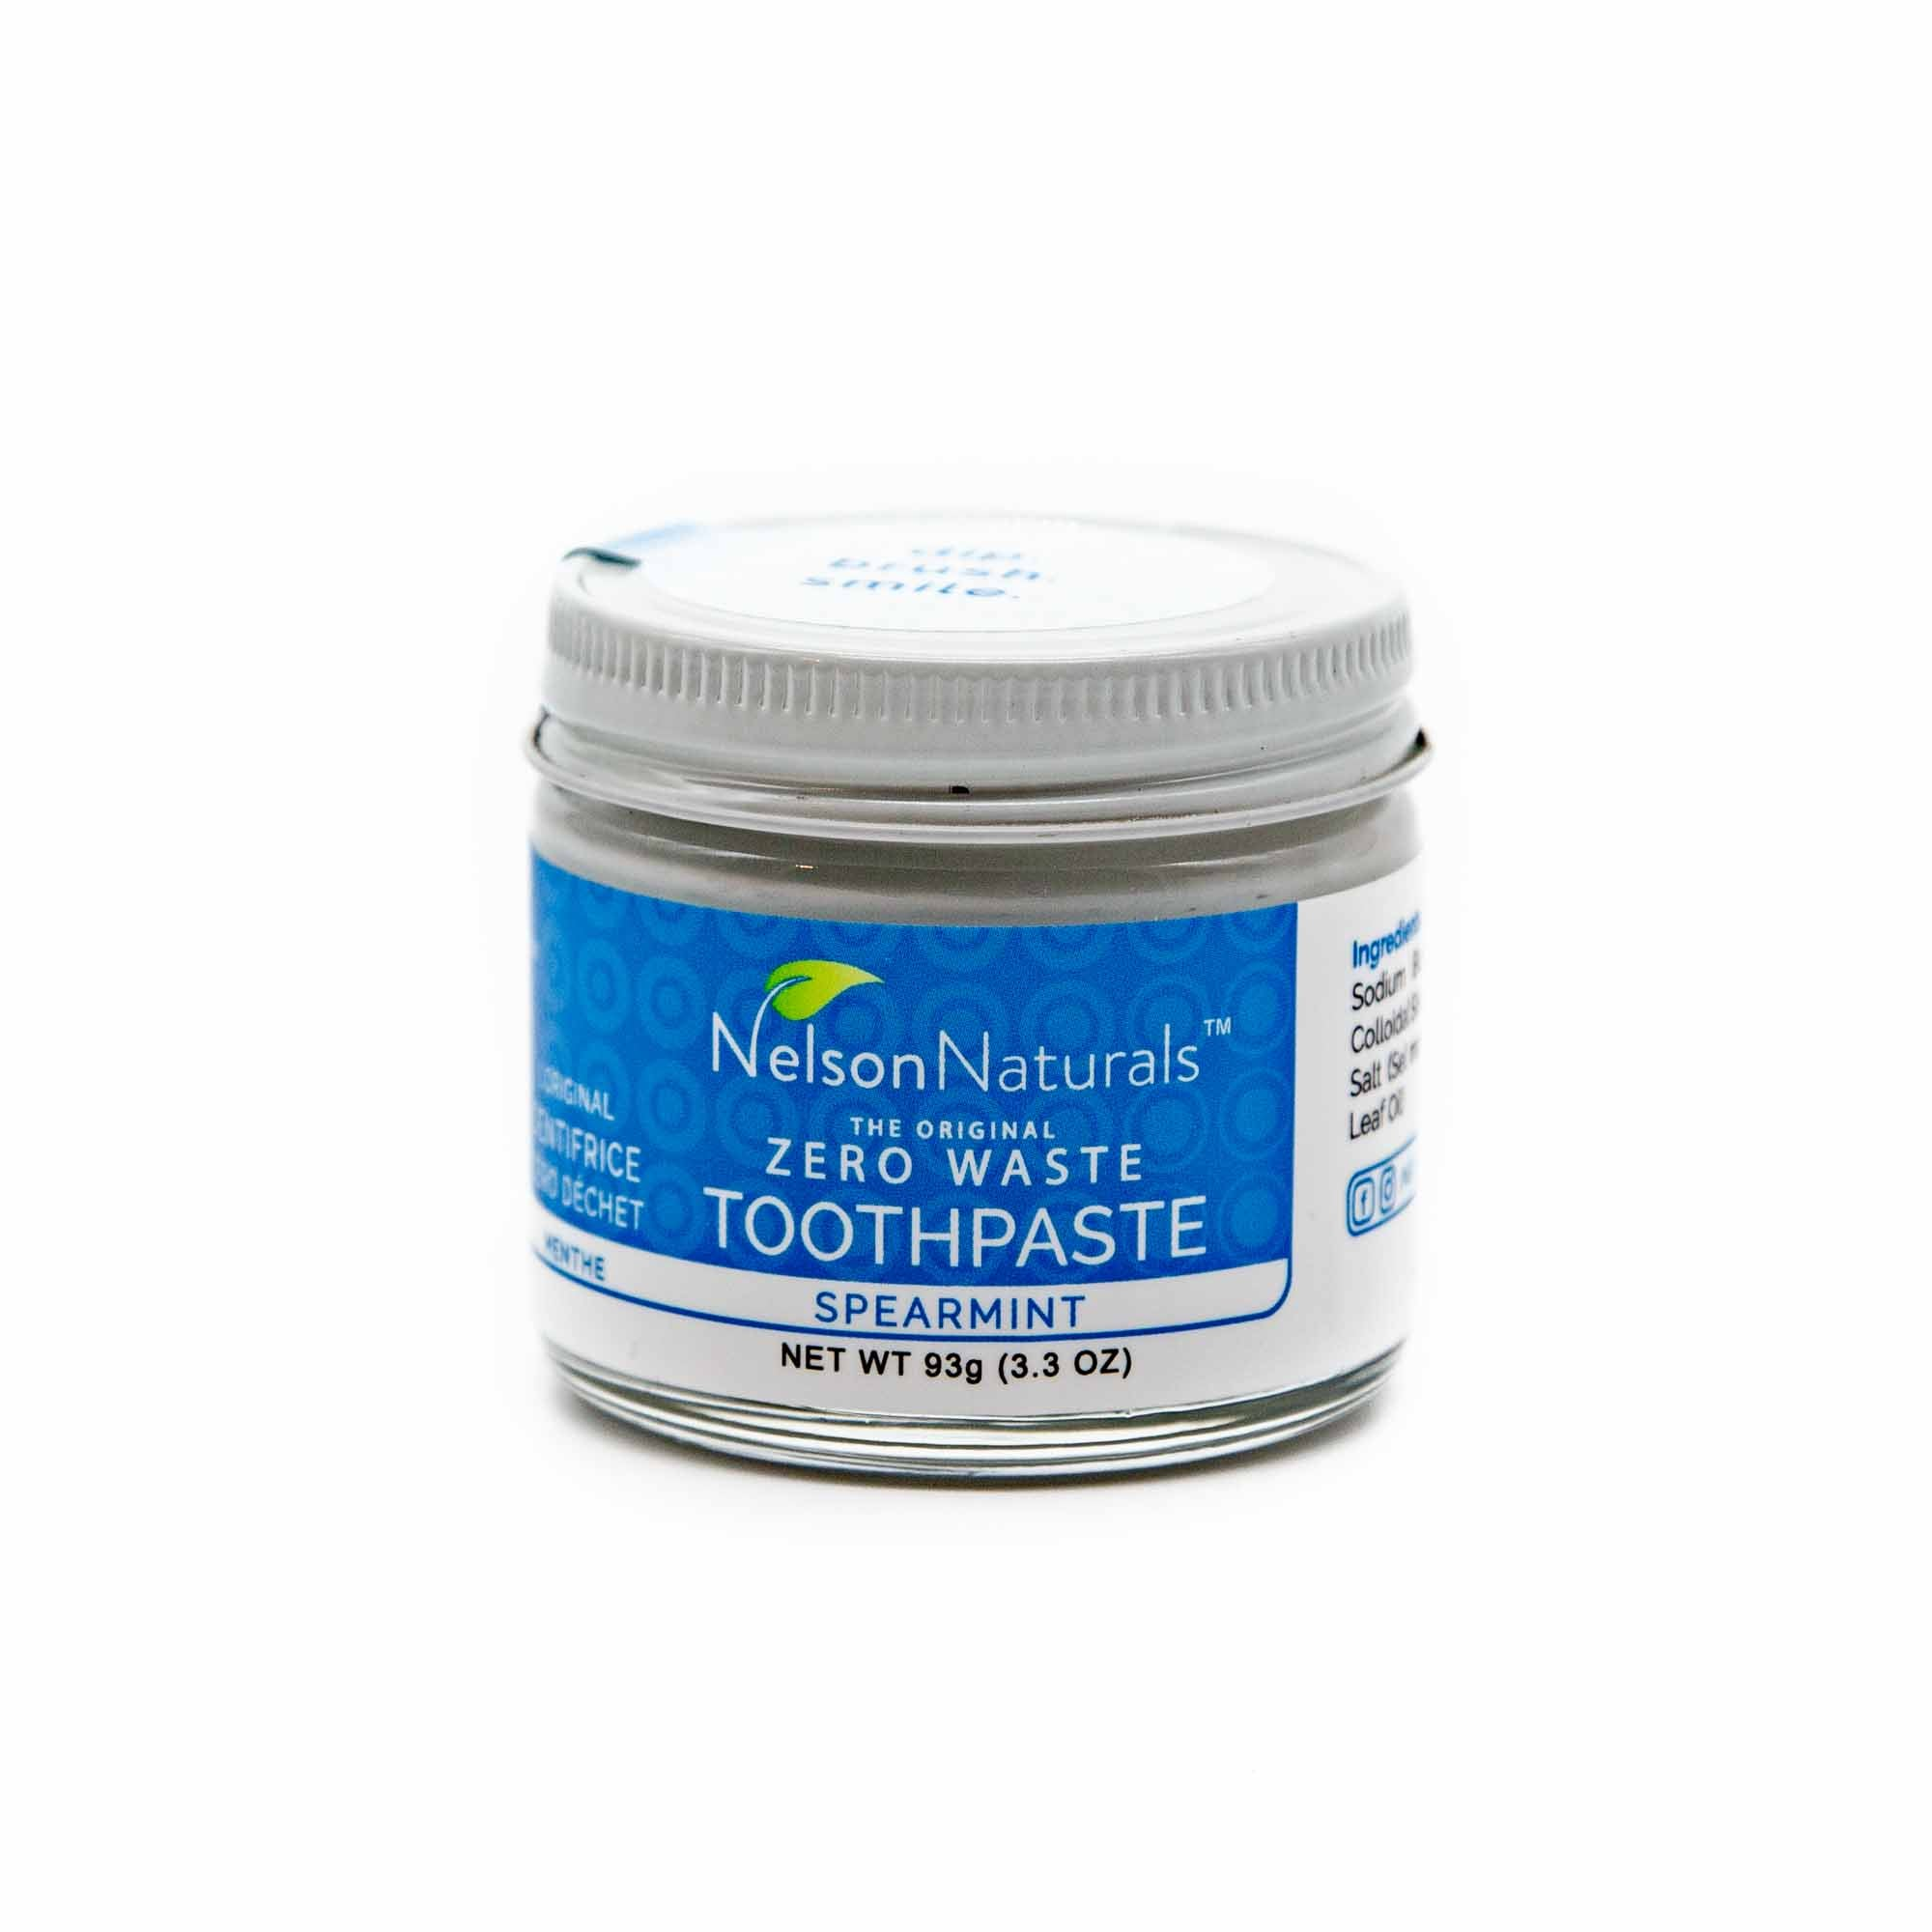 Nelson Naturals Spearmint Toothpaste - Mortise And Tenon